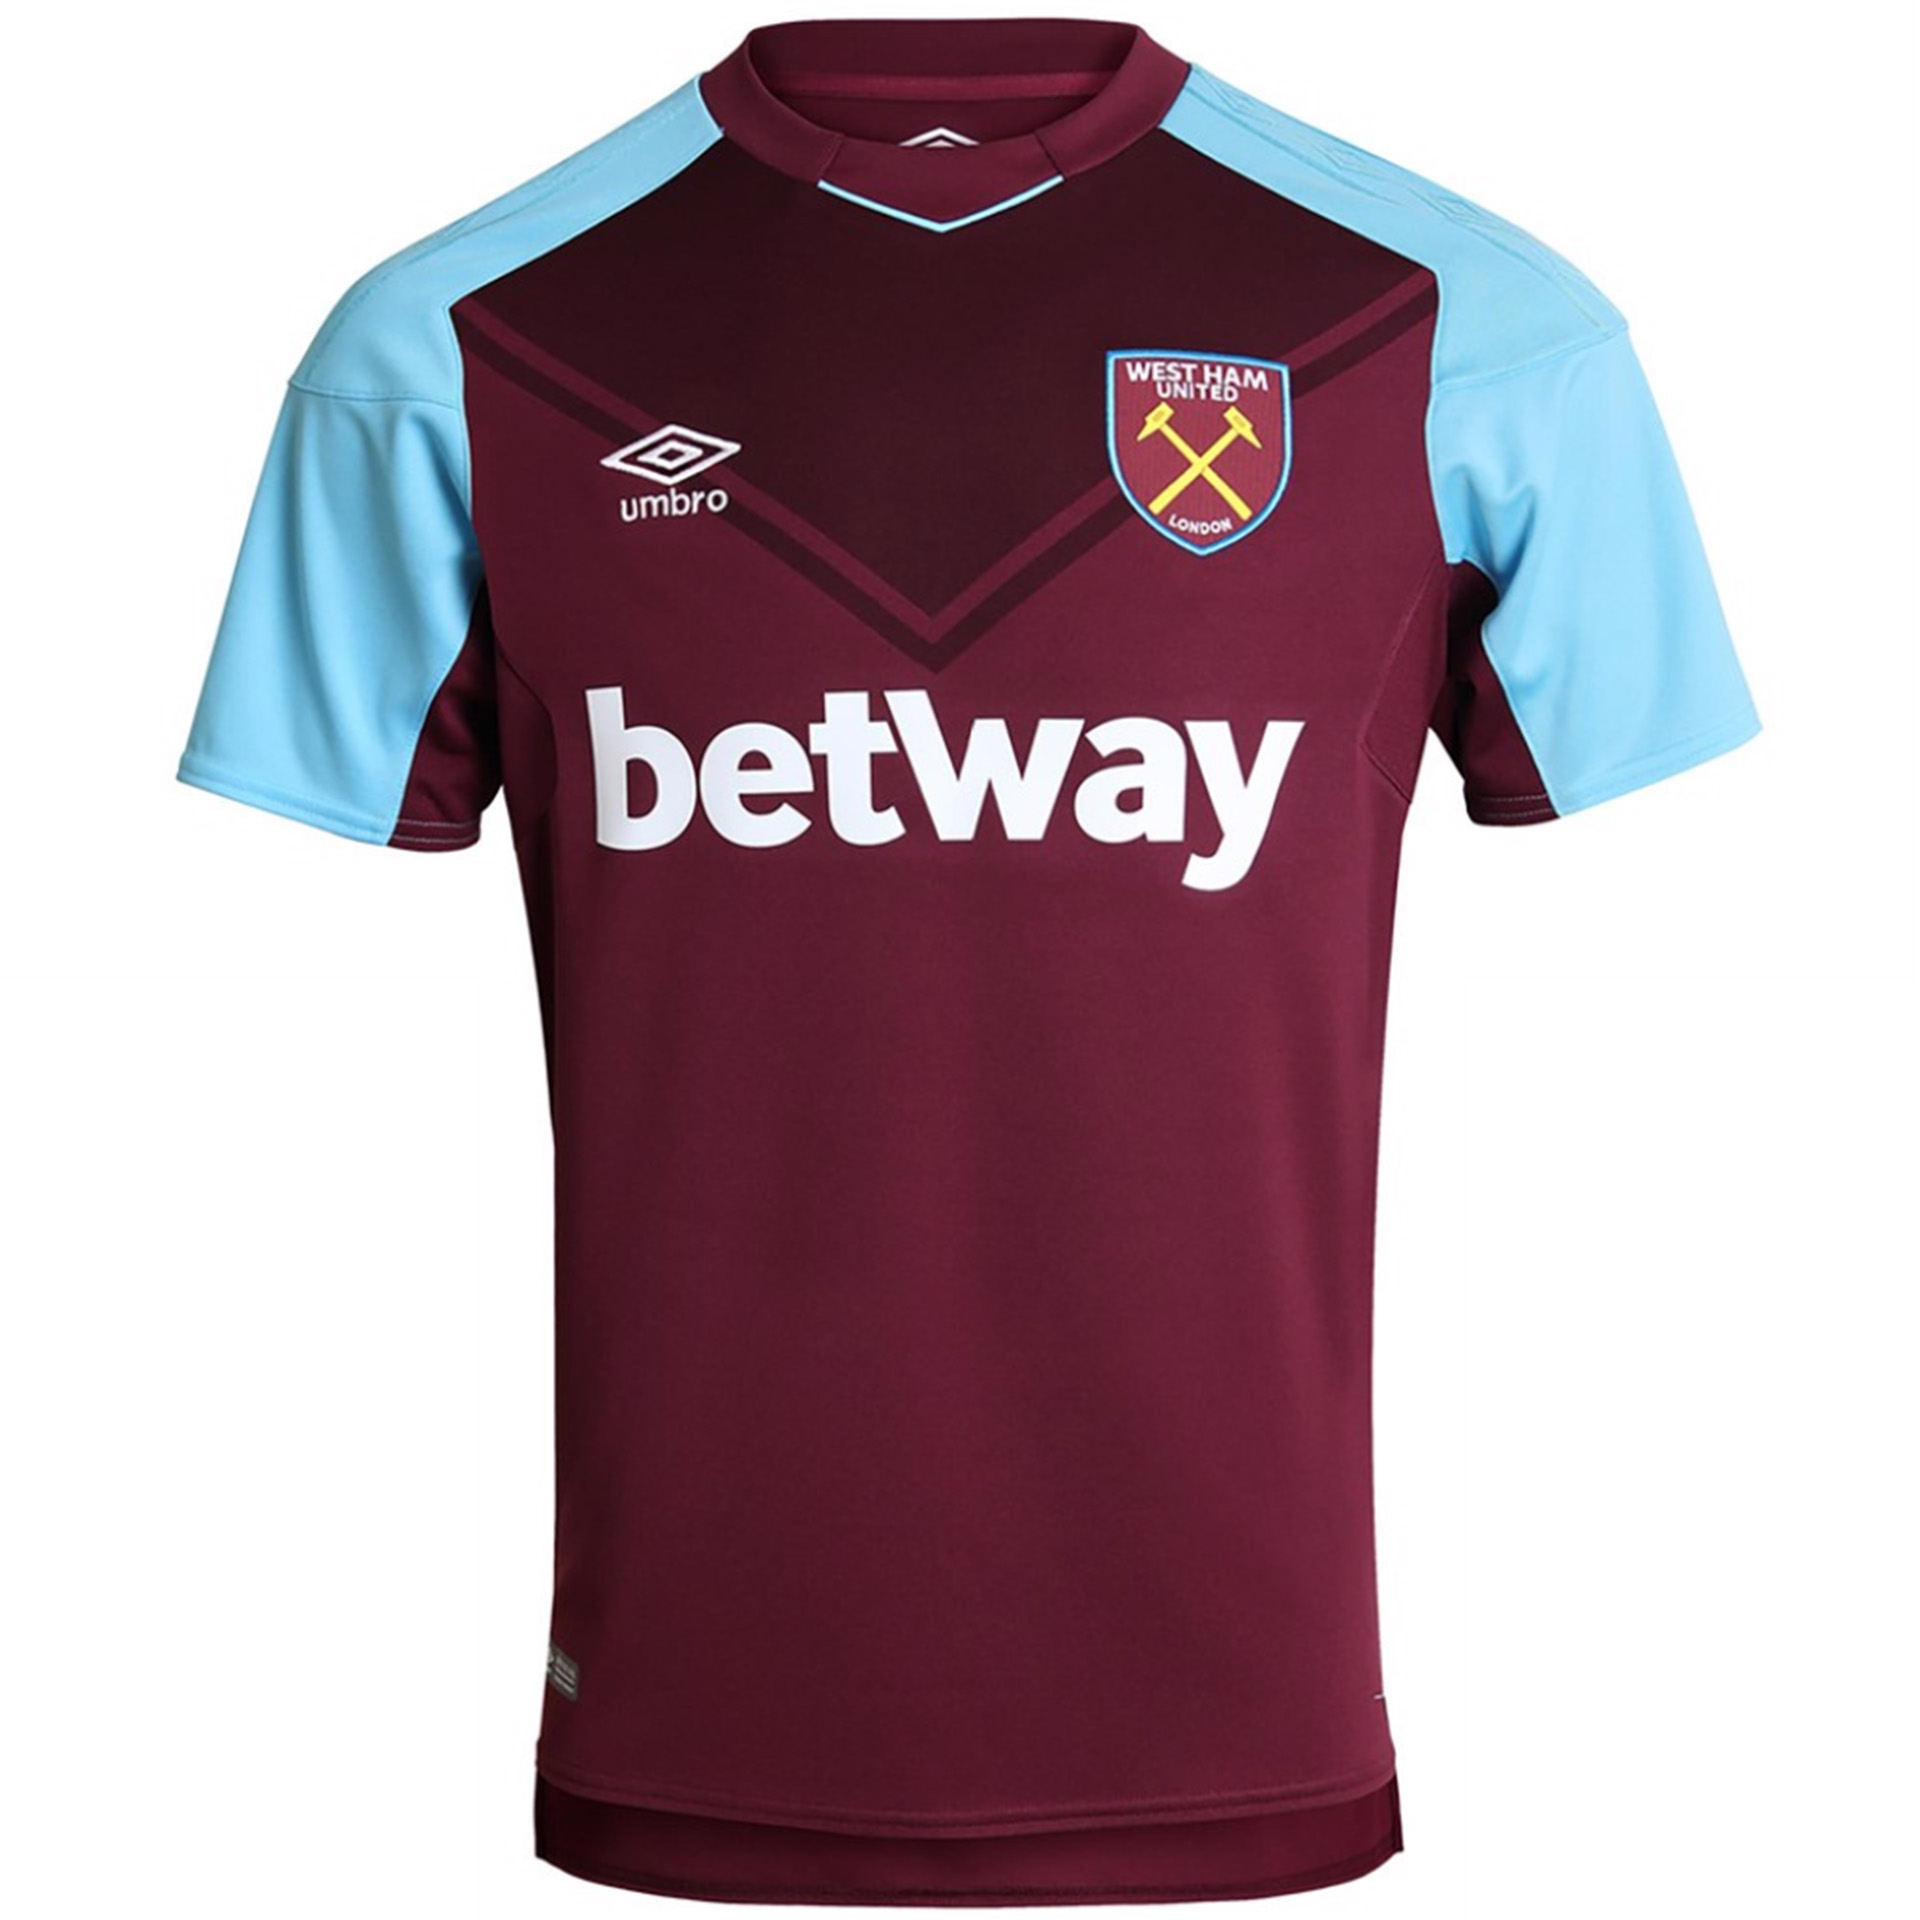 2017-18 westham United Home front